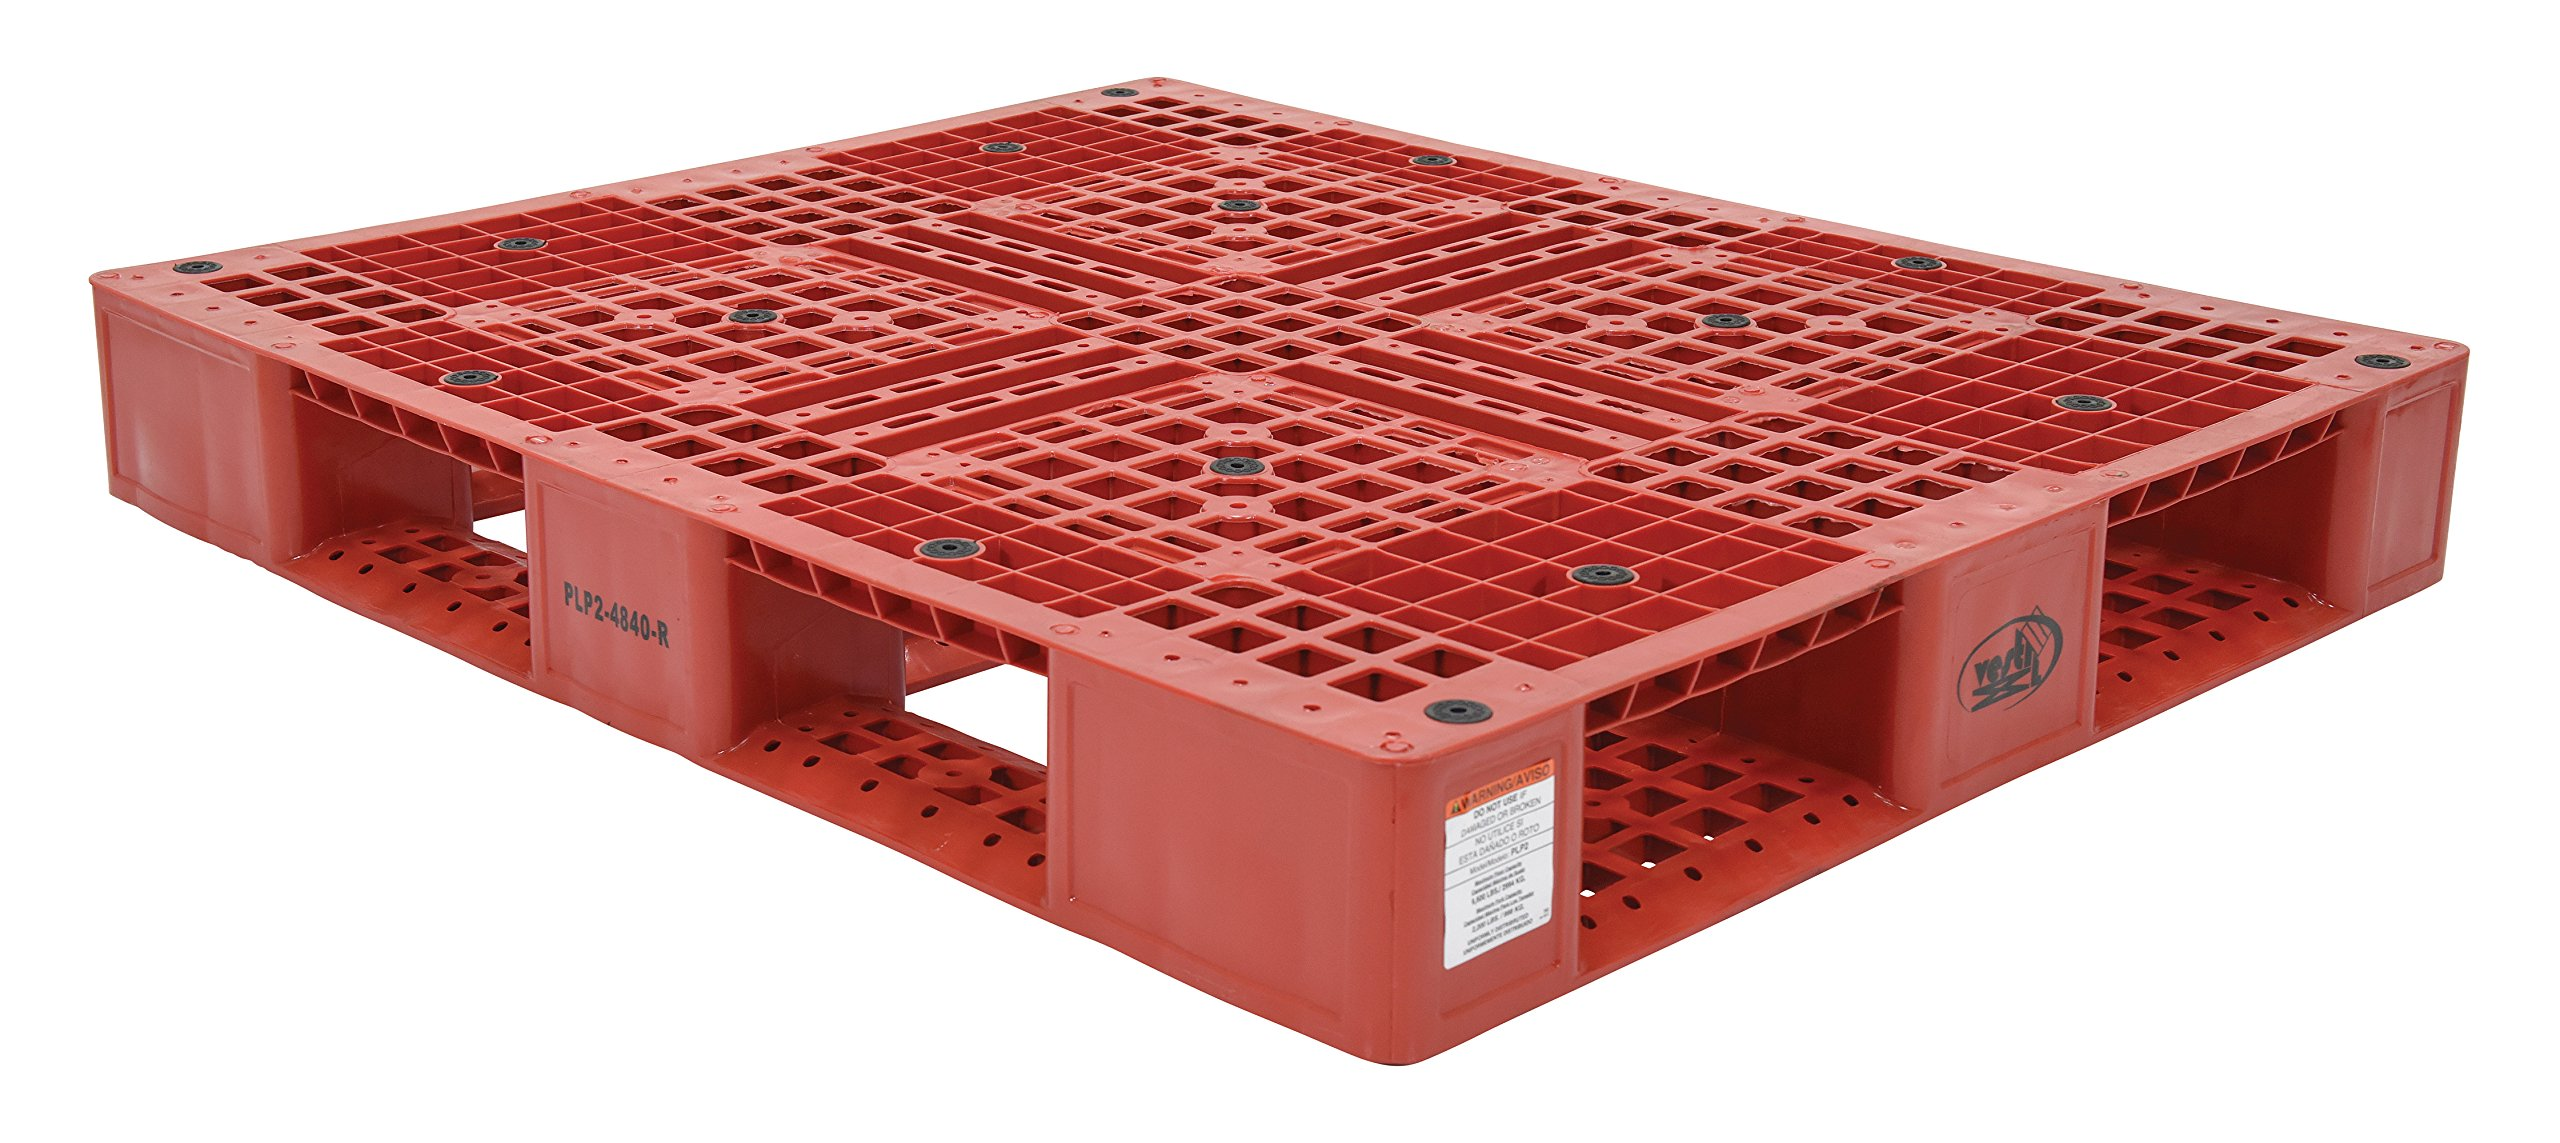 Vestil PLP2-4840-RED Red Polyethylene Pallet with 4 Way Entry, 6600 lbs Capacity, 39.5'' Length, 47.375'' Width x 6'' Height by Vestil